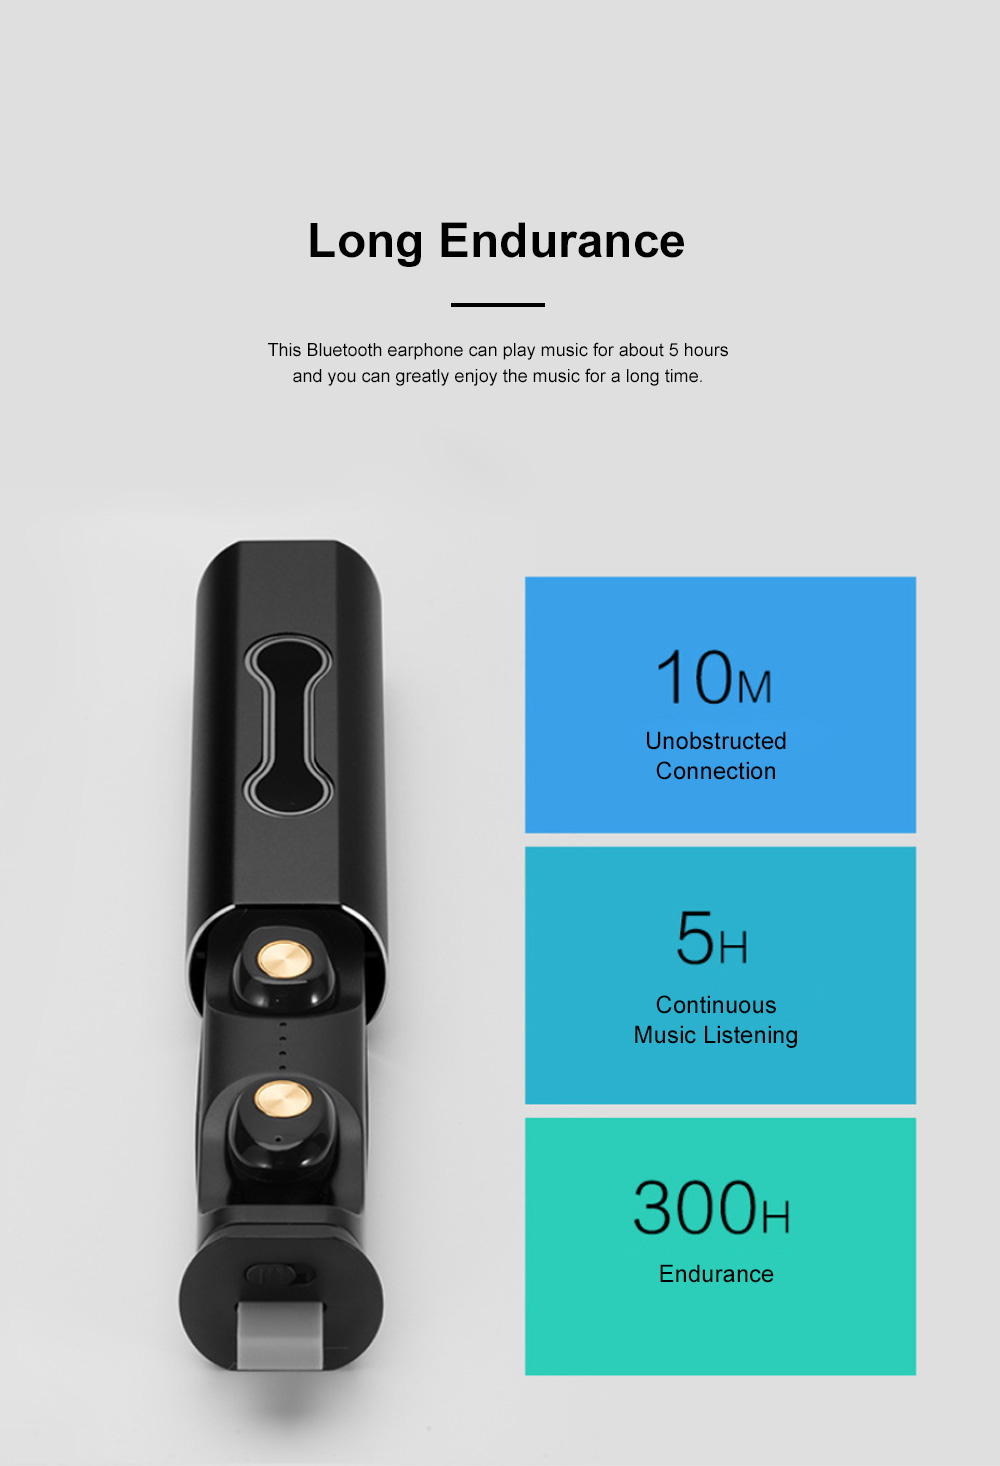 Portable Pull-Out Type Metal Case Bluetooth Earphones Long Endurance Wireless Headset with Wonderful Sound Quality 3